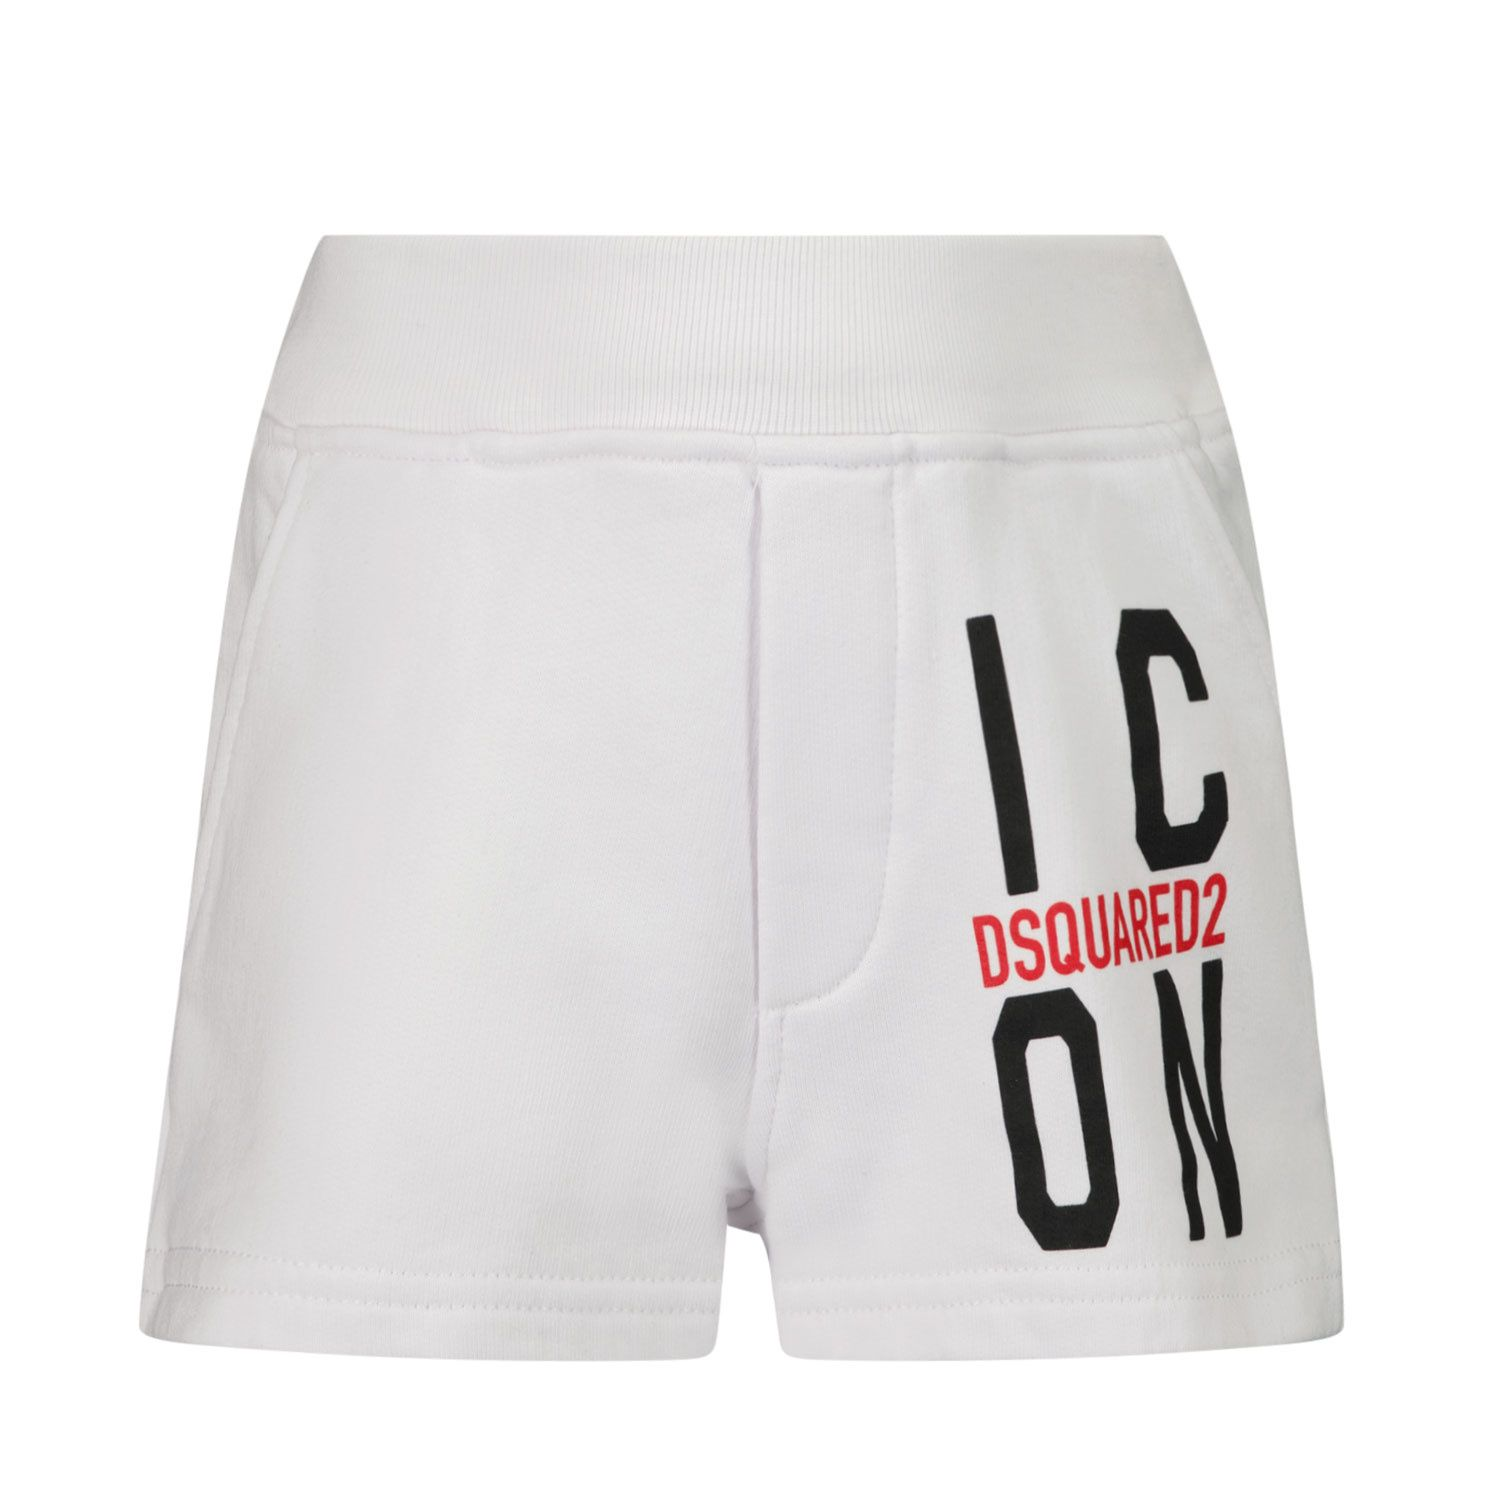 Picture of Dsquared2 DQ0251 baby shorts white